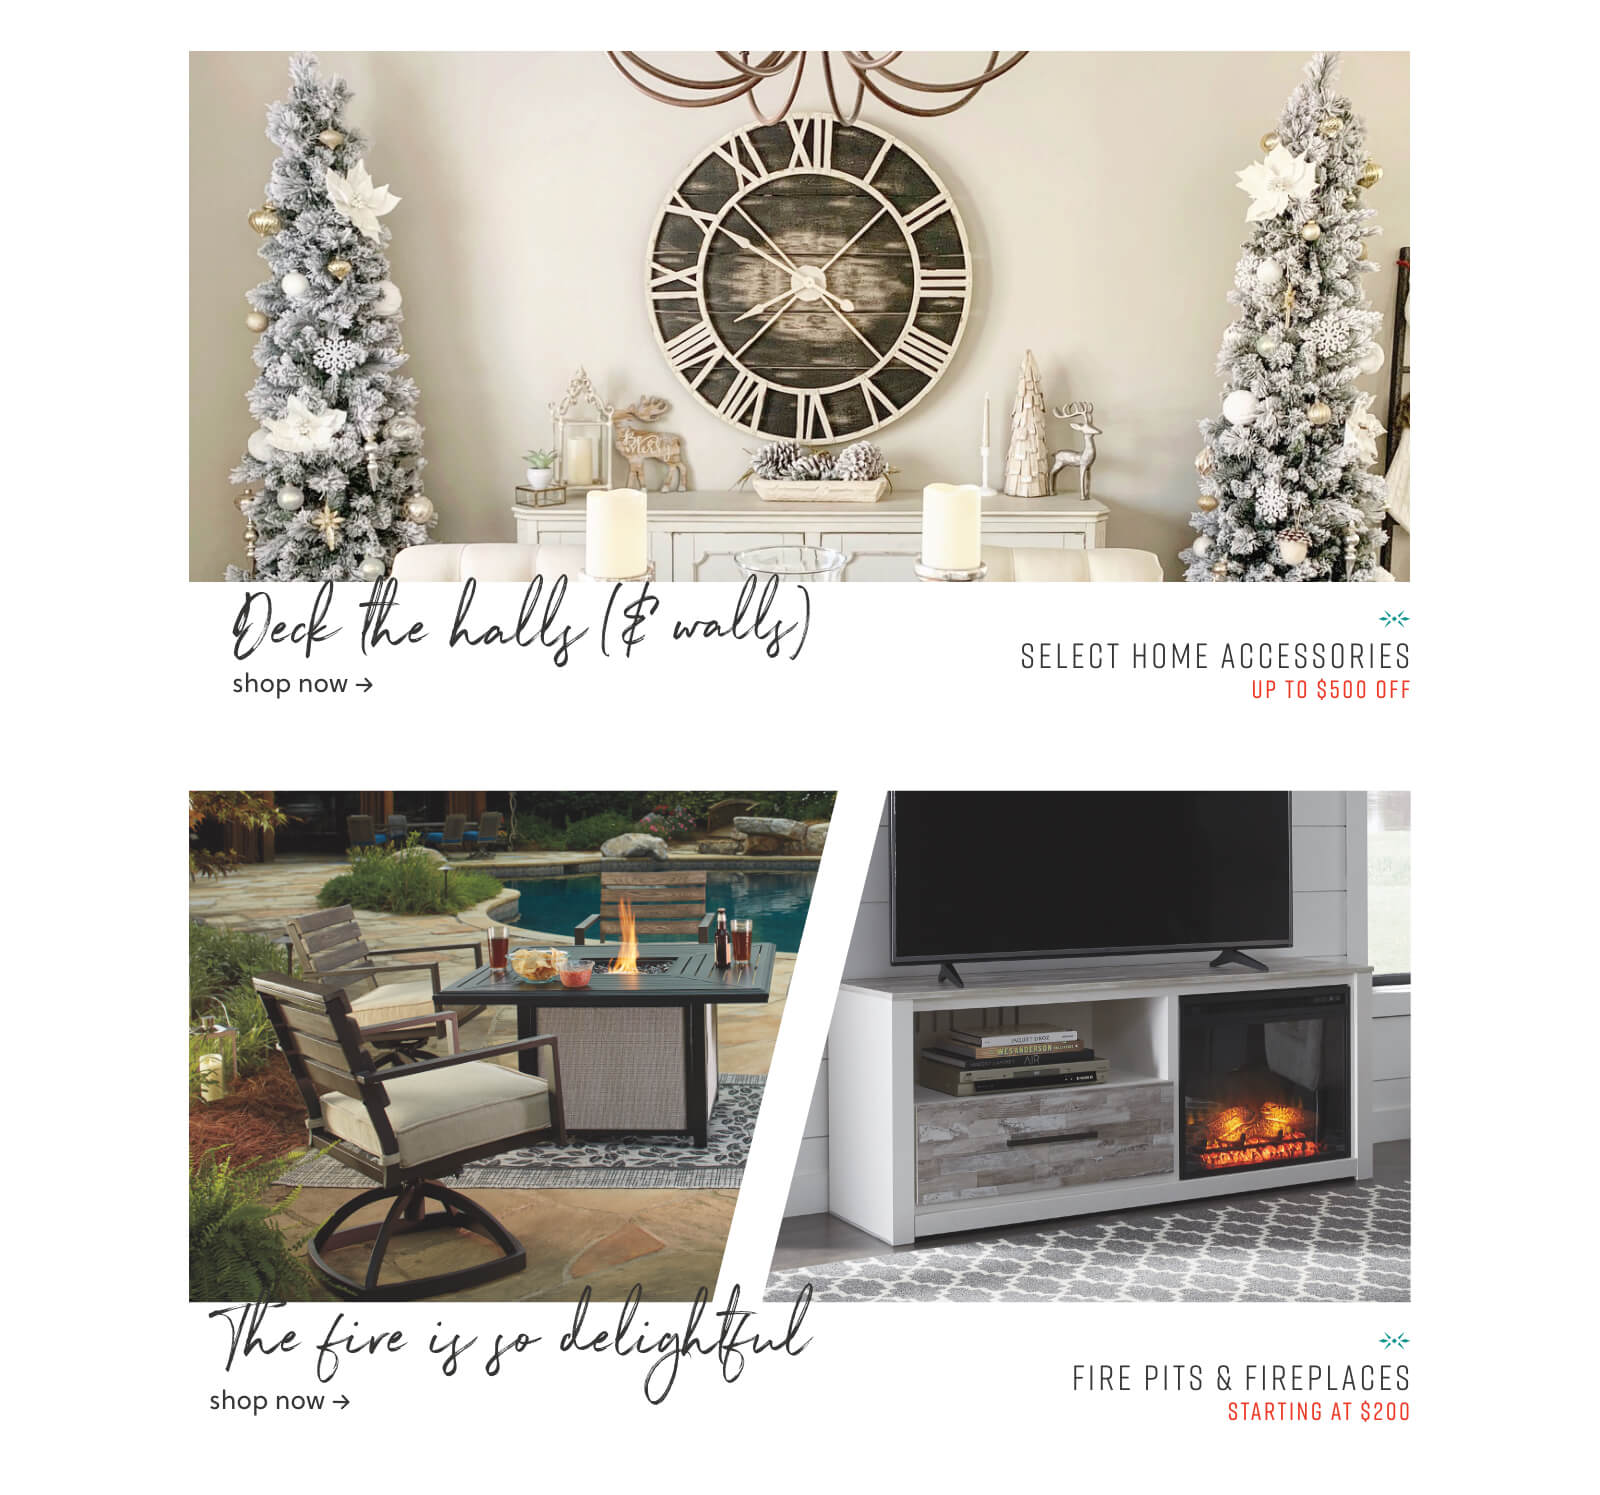 Home Accessories, Fire Pits and Fireplaces